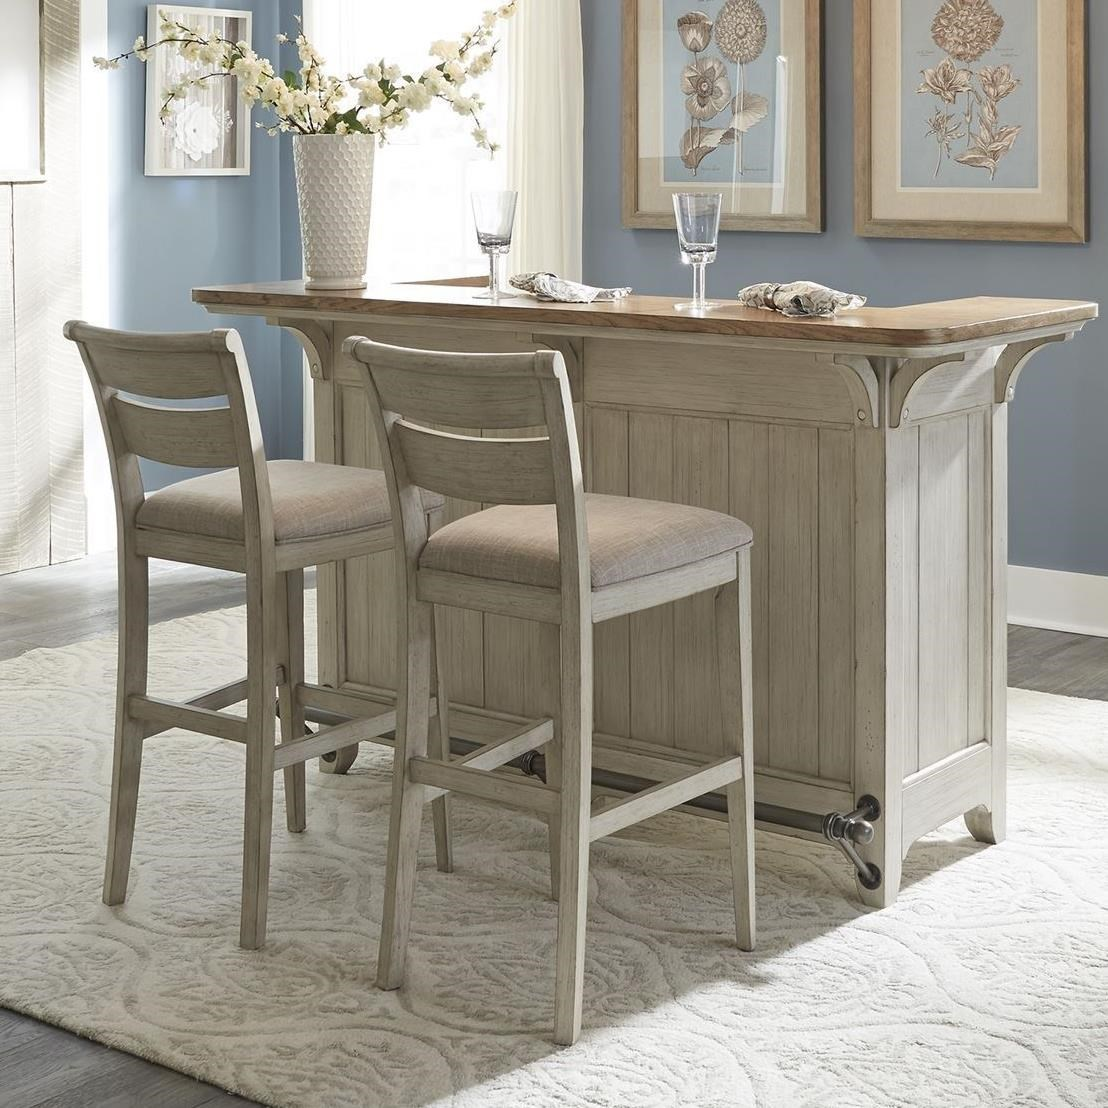 Farmhouse Reimagined 3 Piece Bar Set by Libby at Walker's Furniture